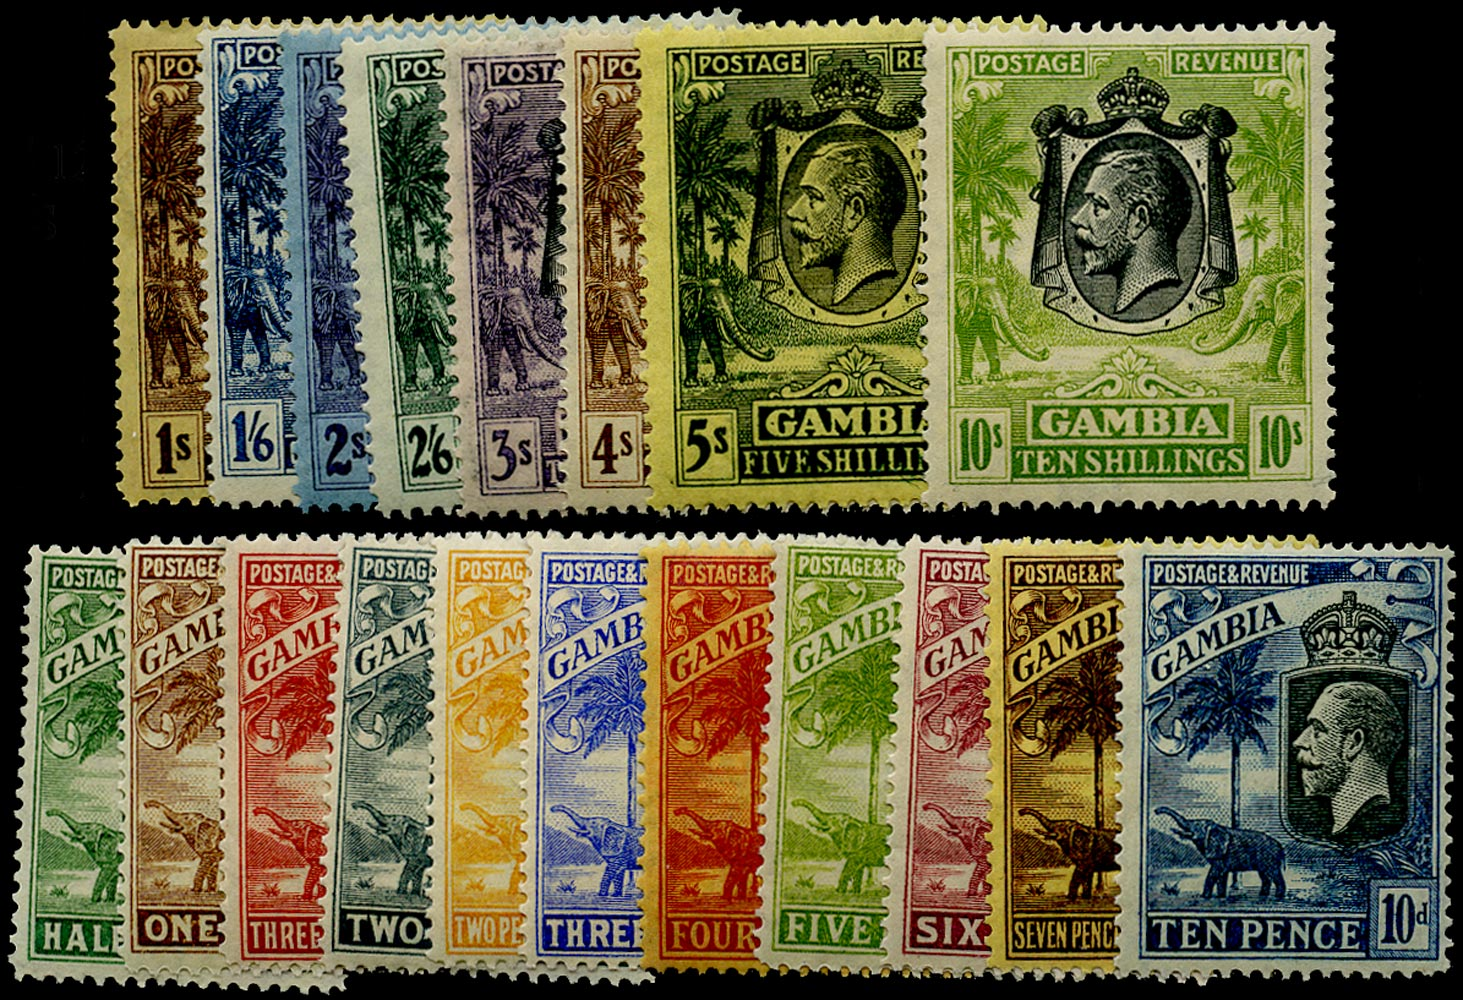 GAMBIA 1922  SG122/42 Mint Elephant and Palms set of 19 to 10s Script watermark